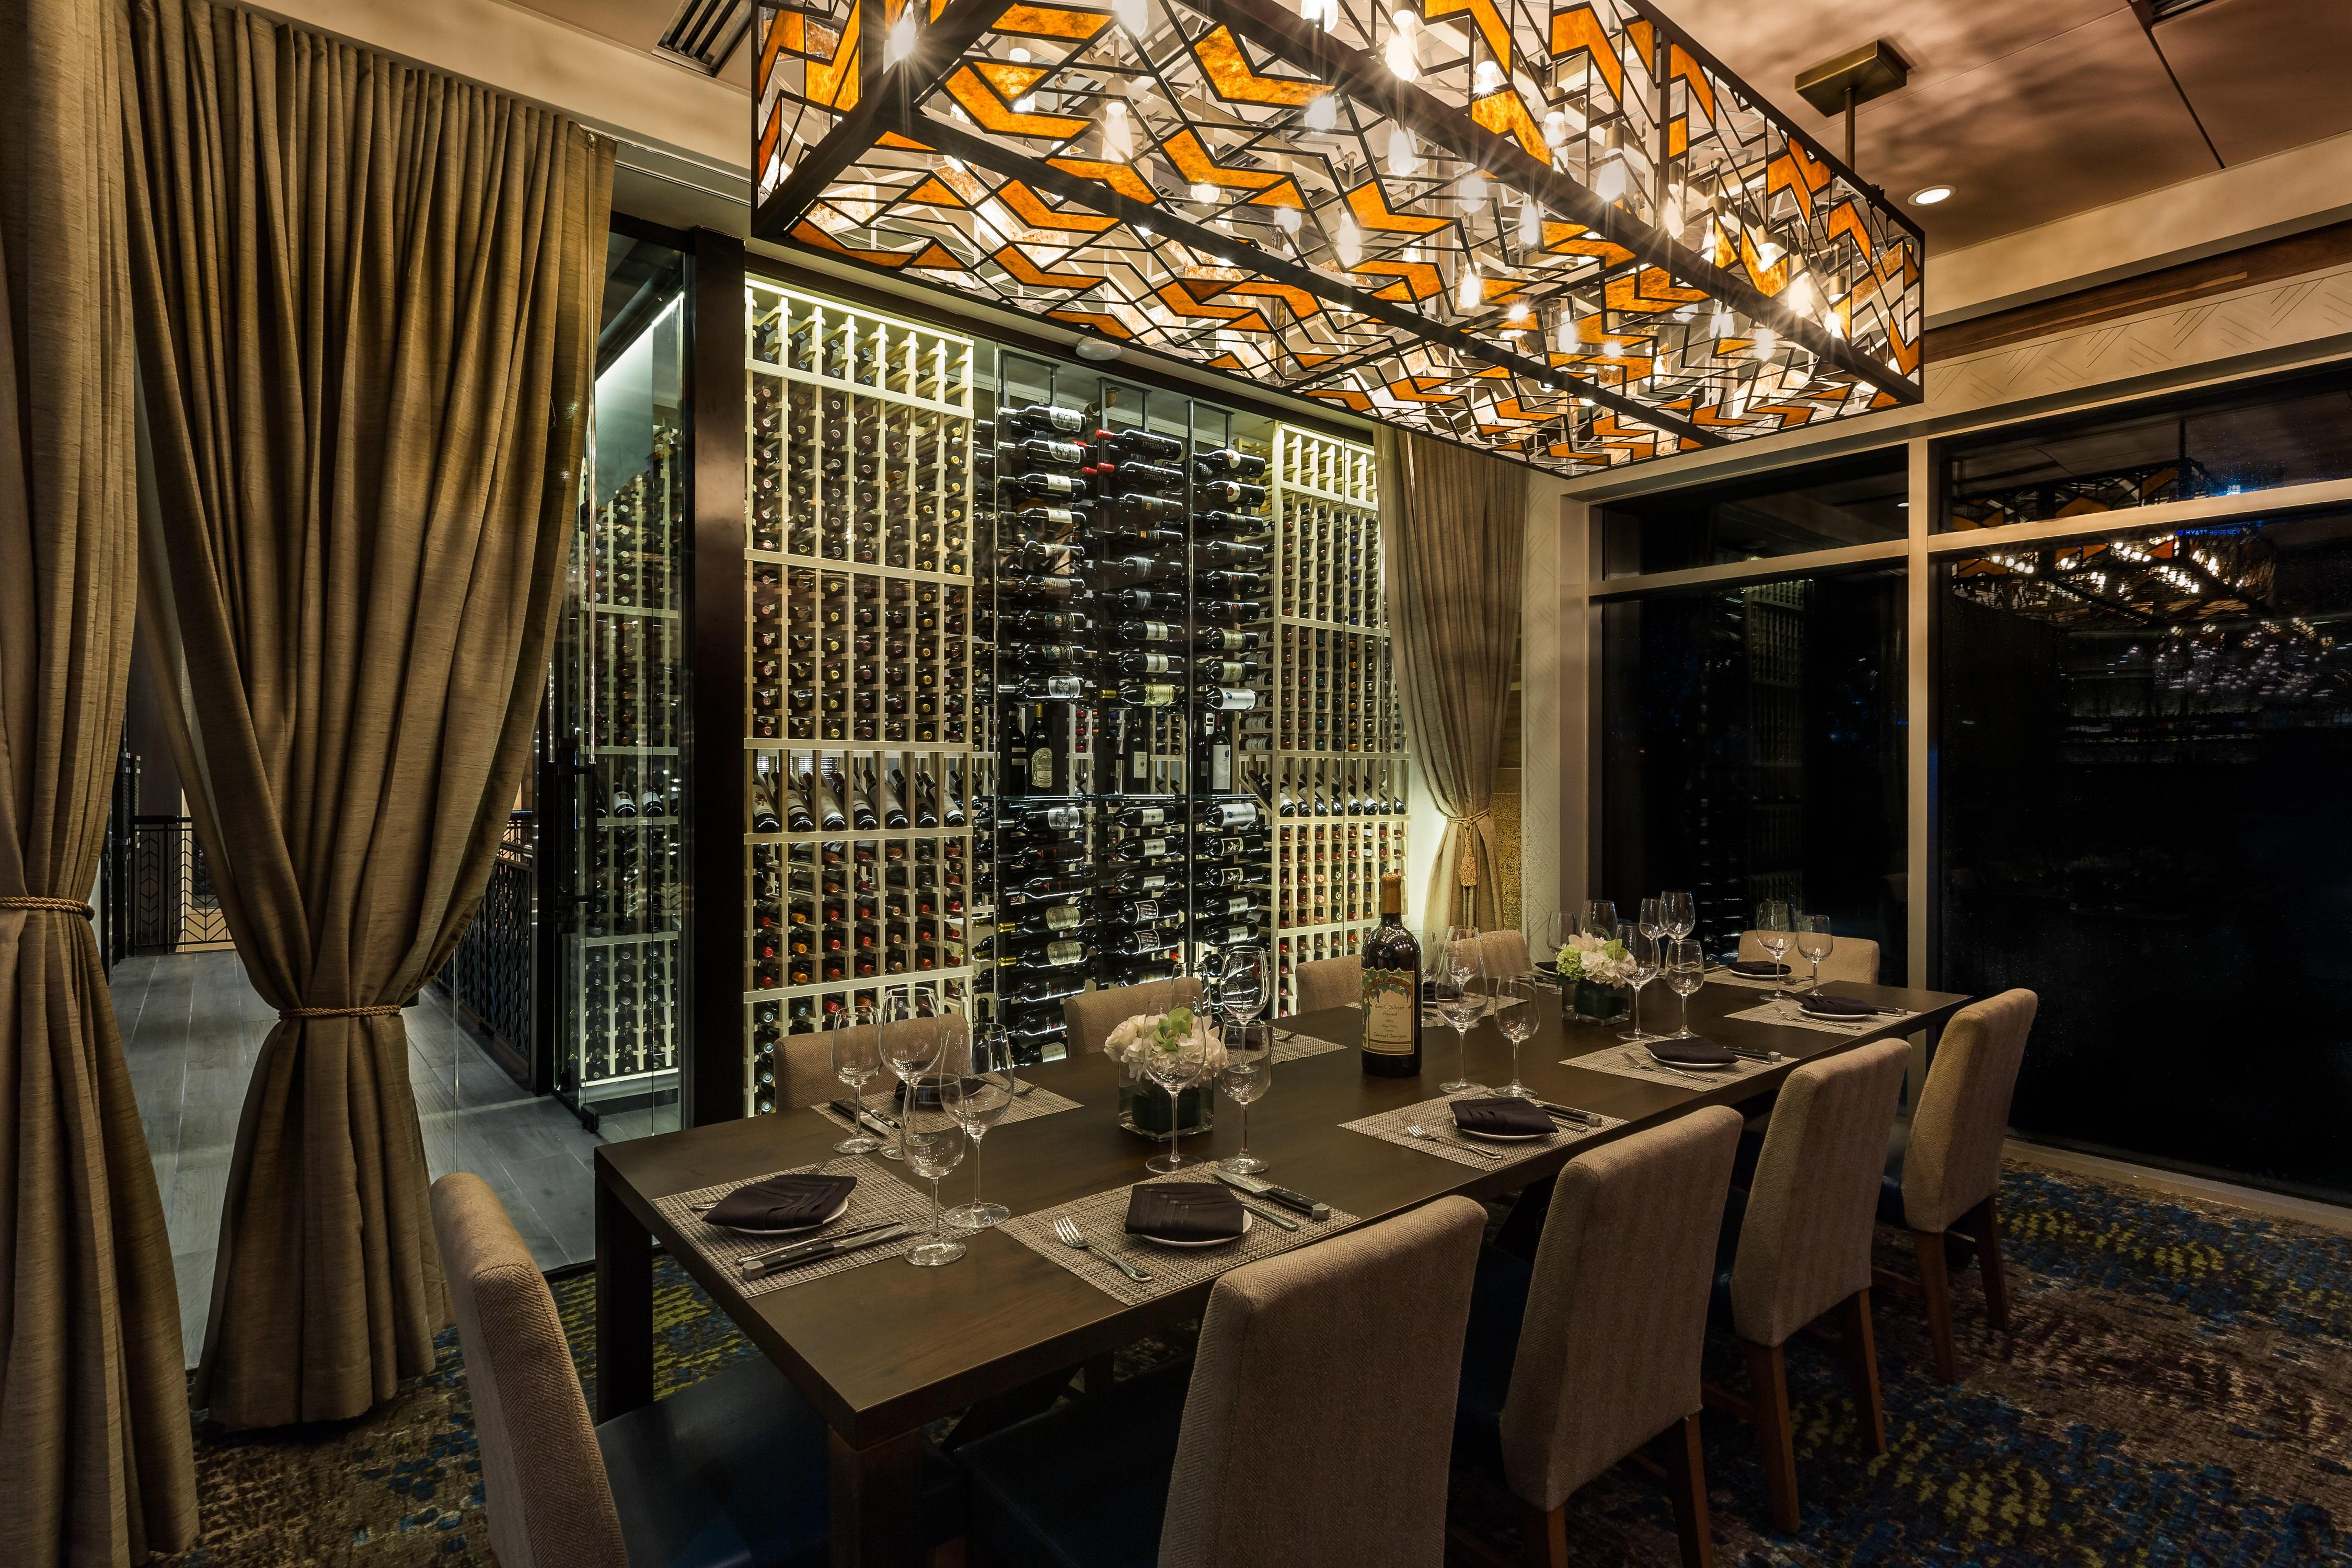 Del Frisco's Double Eagle Steakhouse Orlando EAGLE'S NEST private dining room